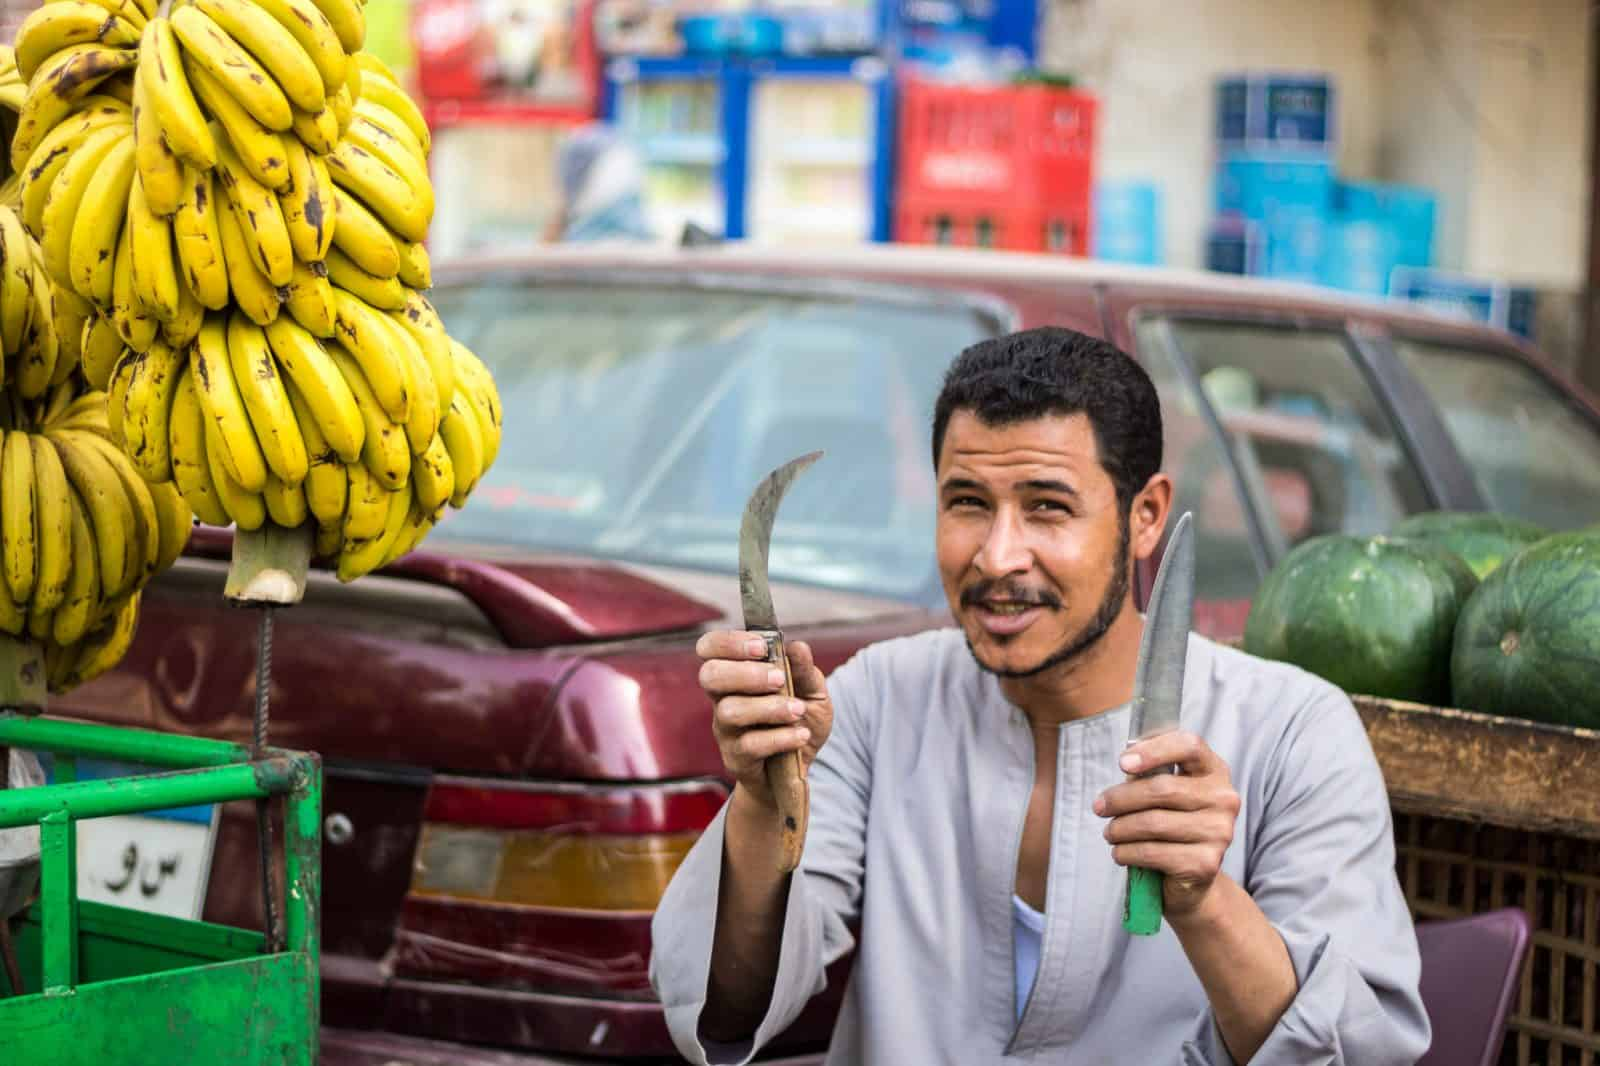 Cheeky banana man in Giza, Egypt. He was all smiles!